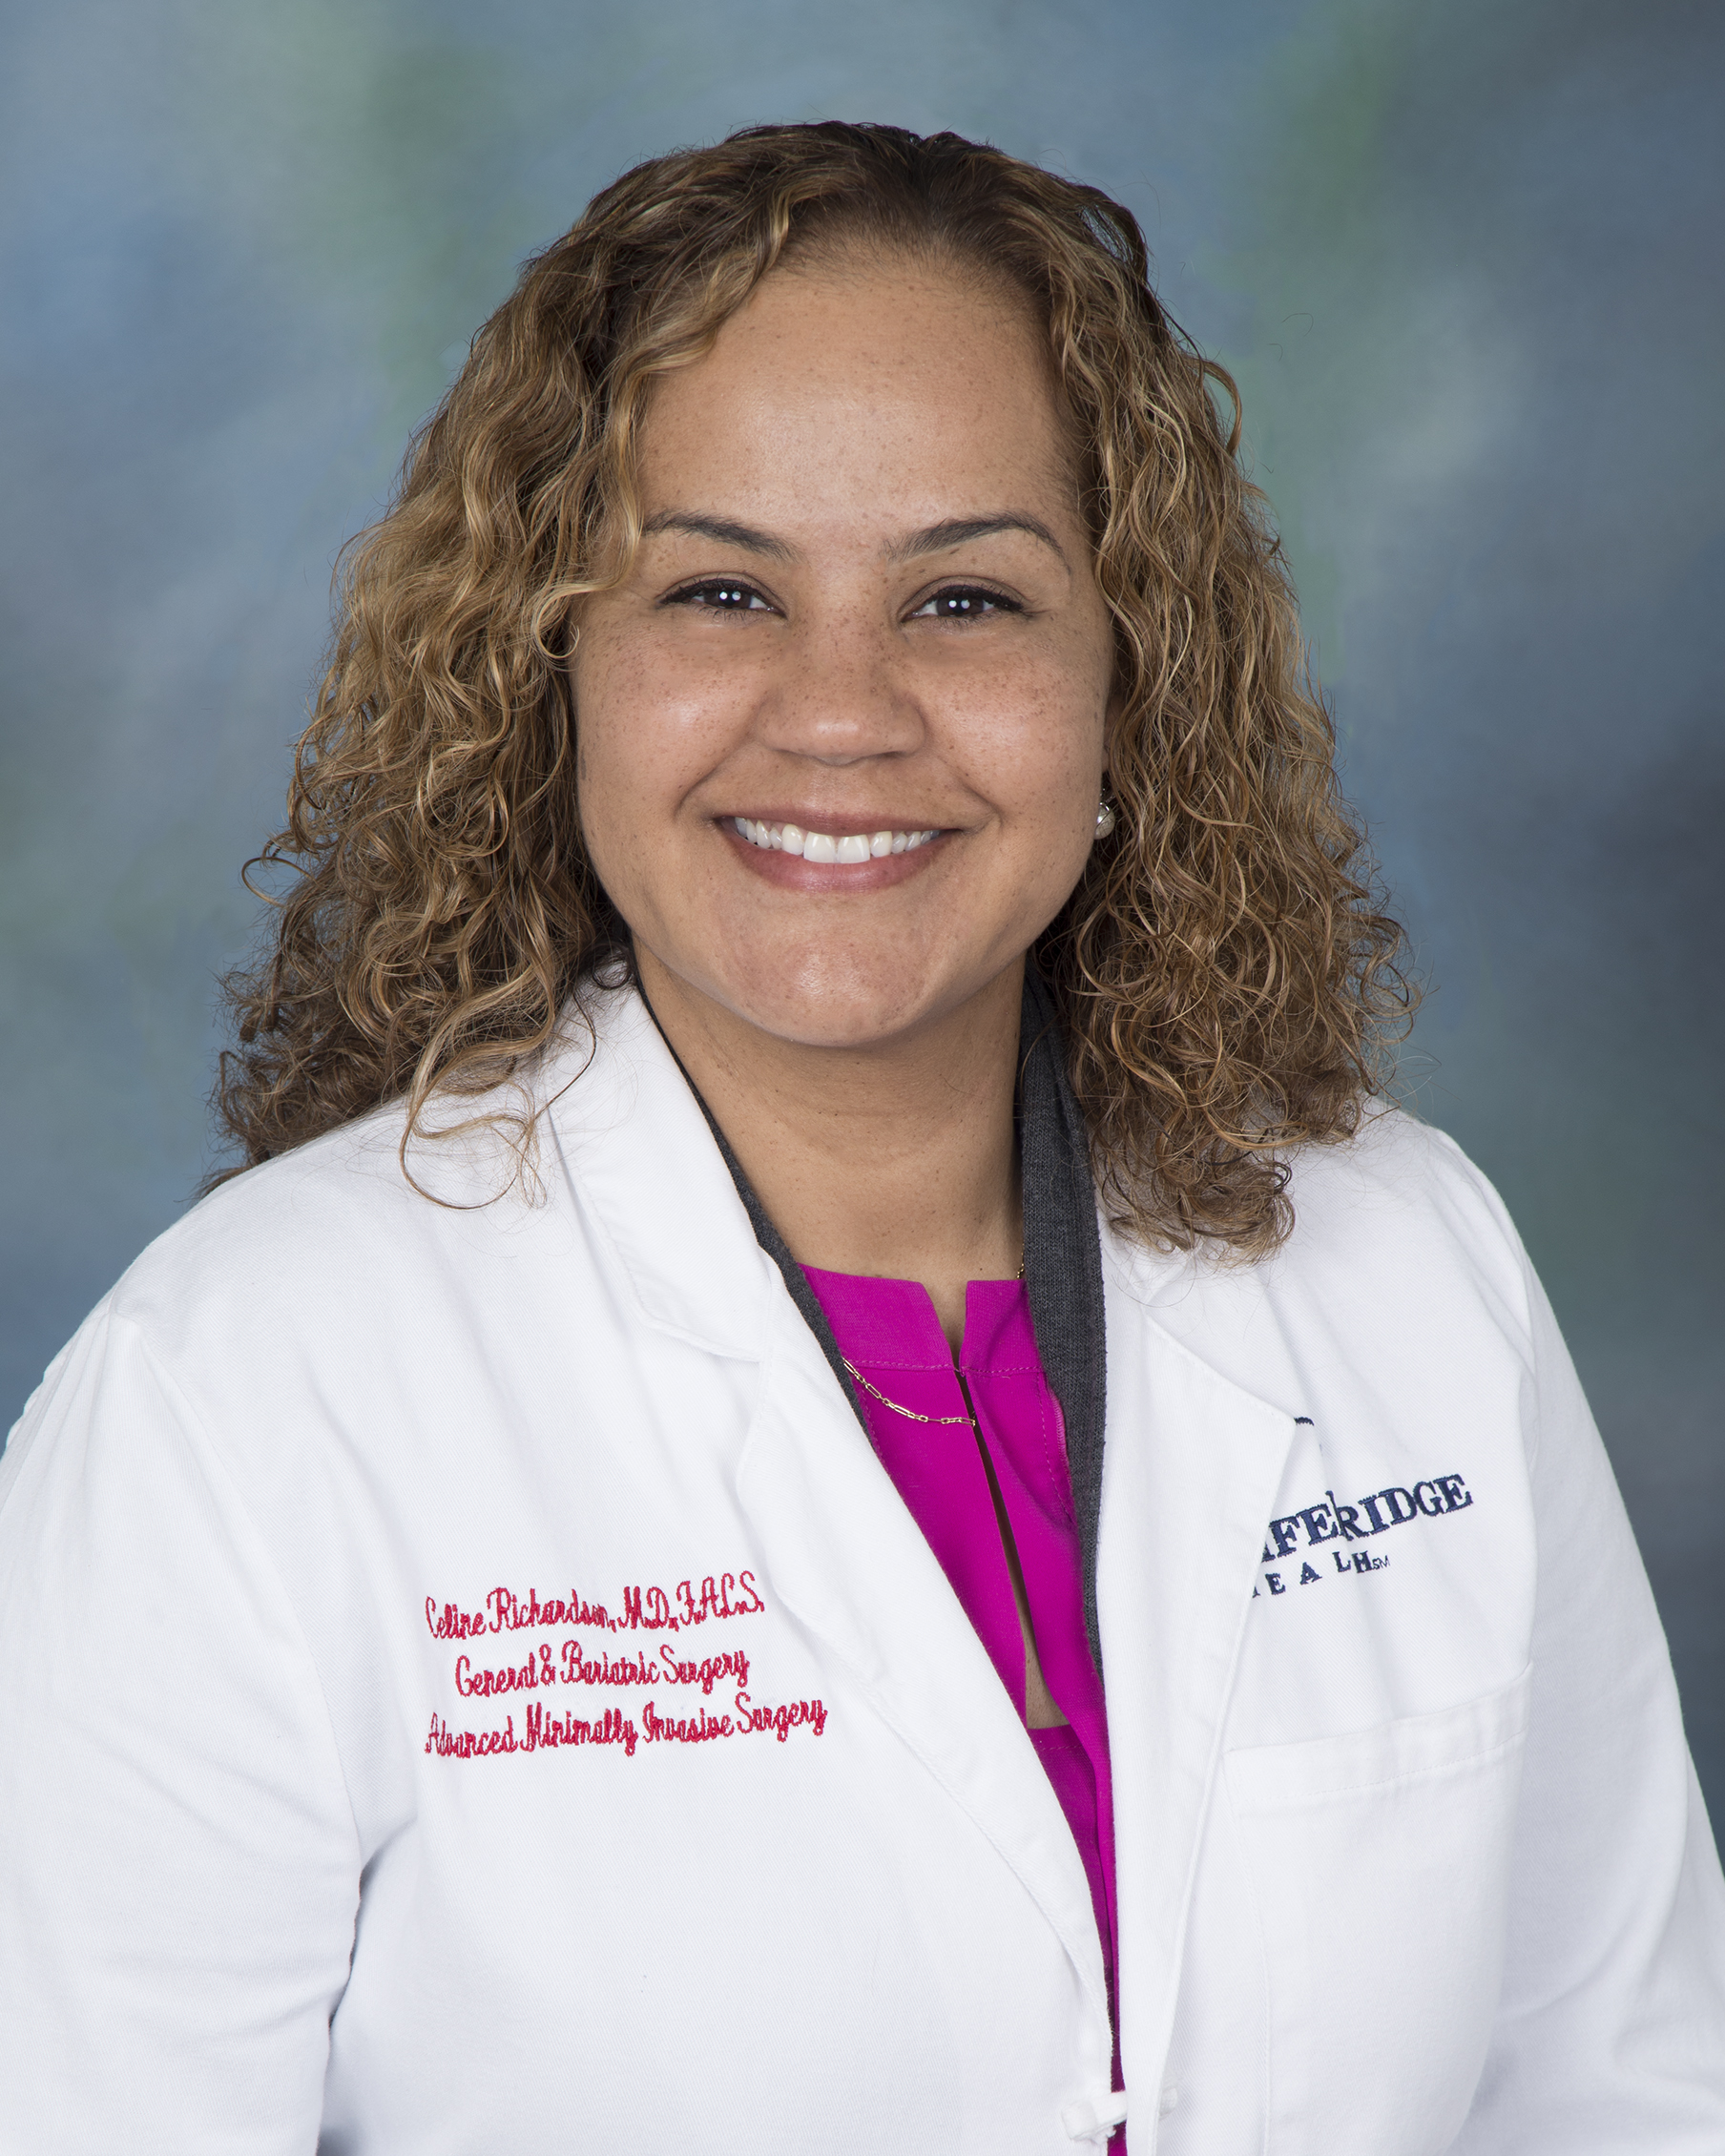 Celine Richardson, M.D.